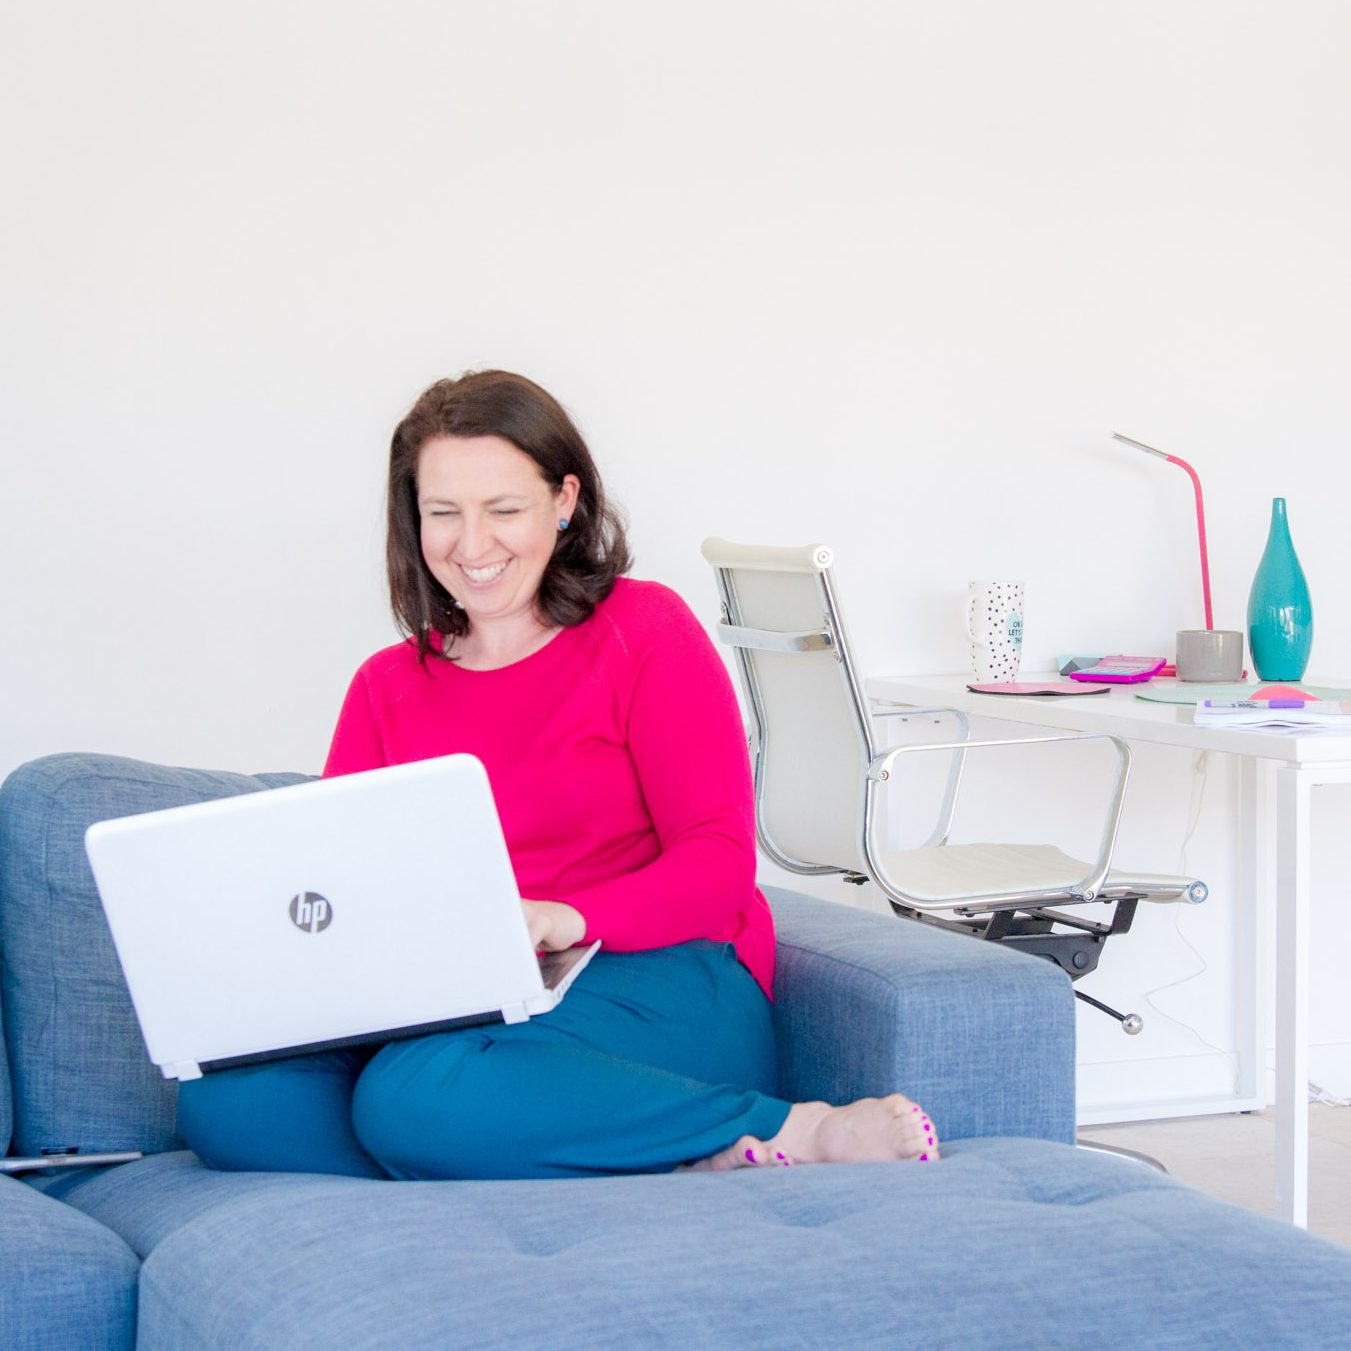 women in pink and blue on a blue couch with a white laptop